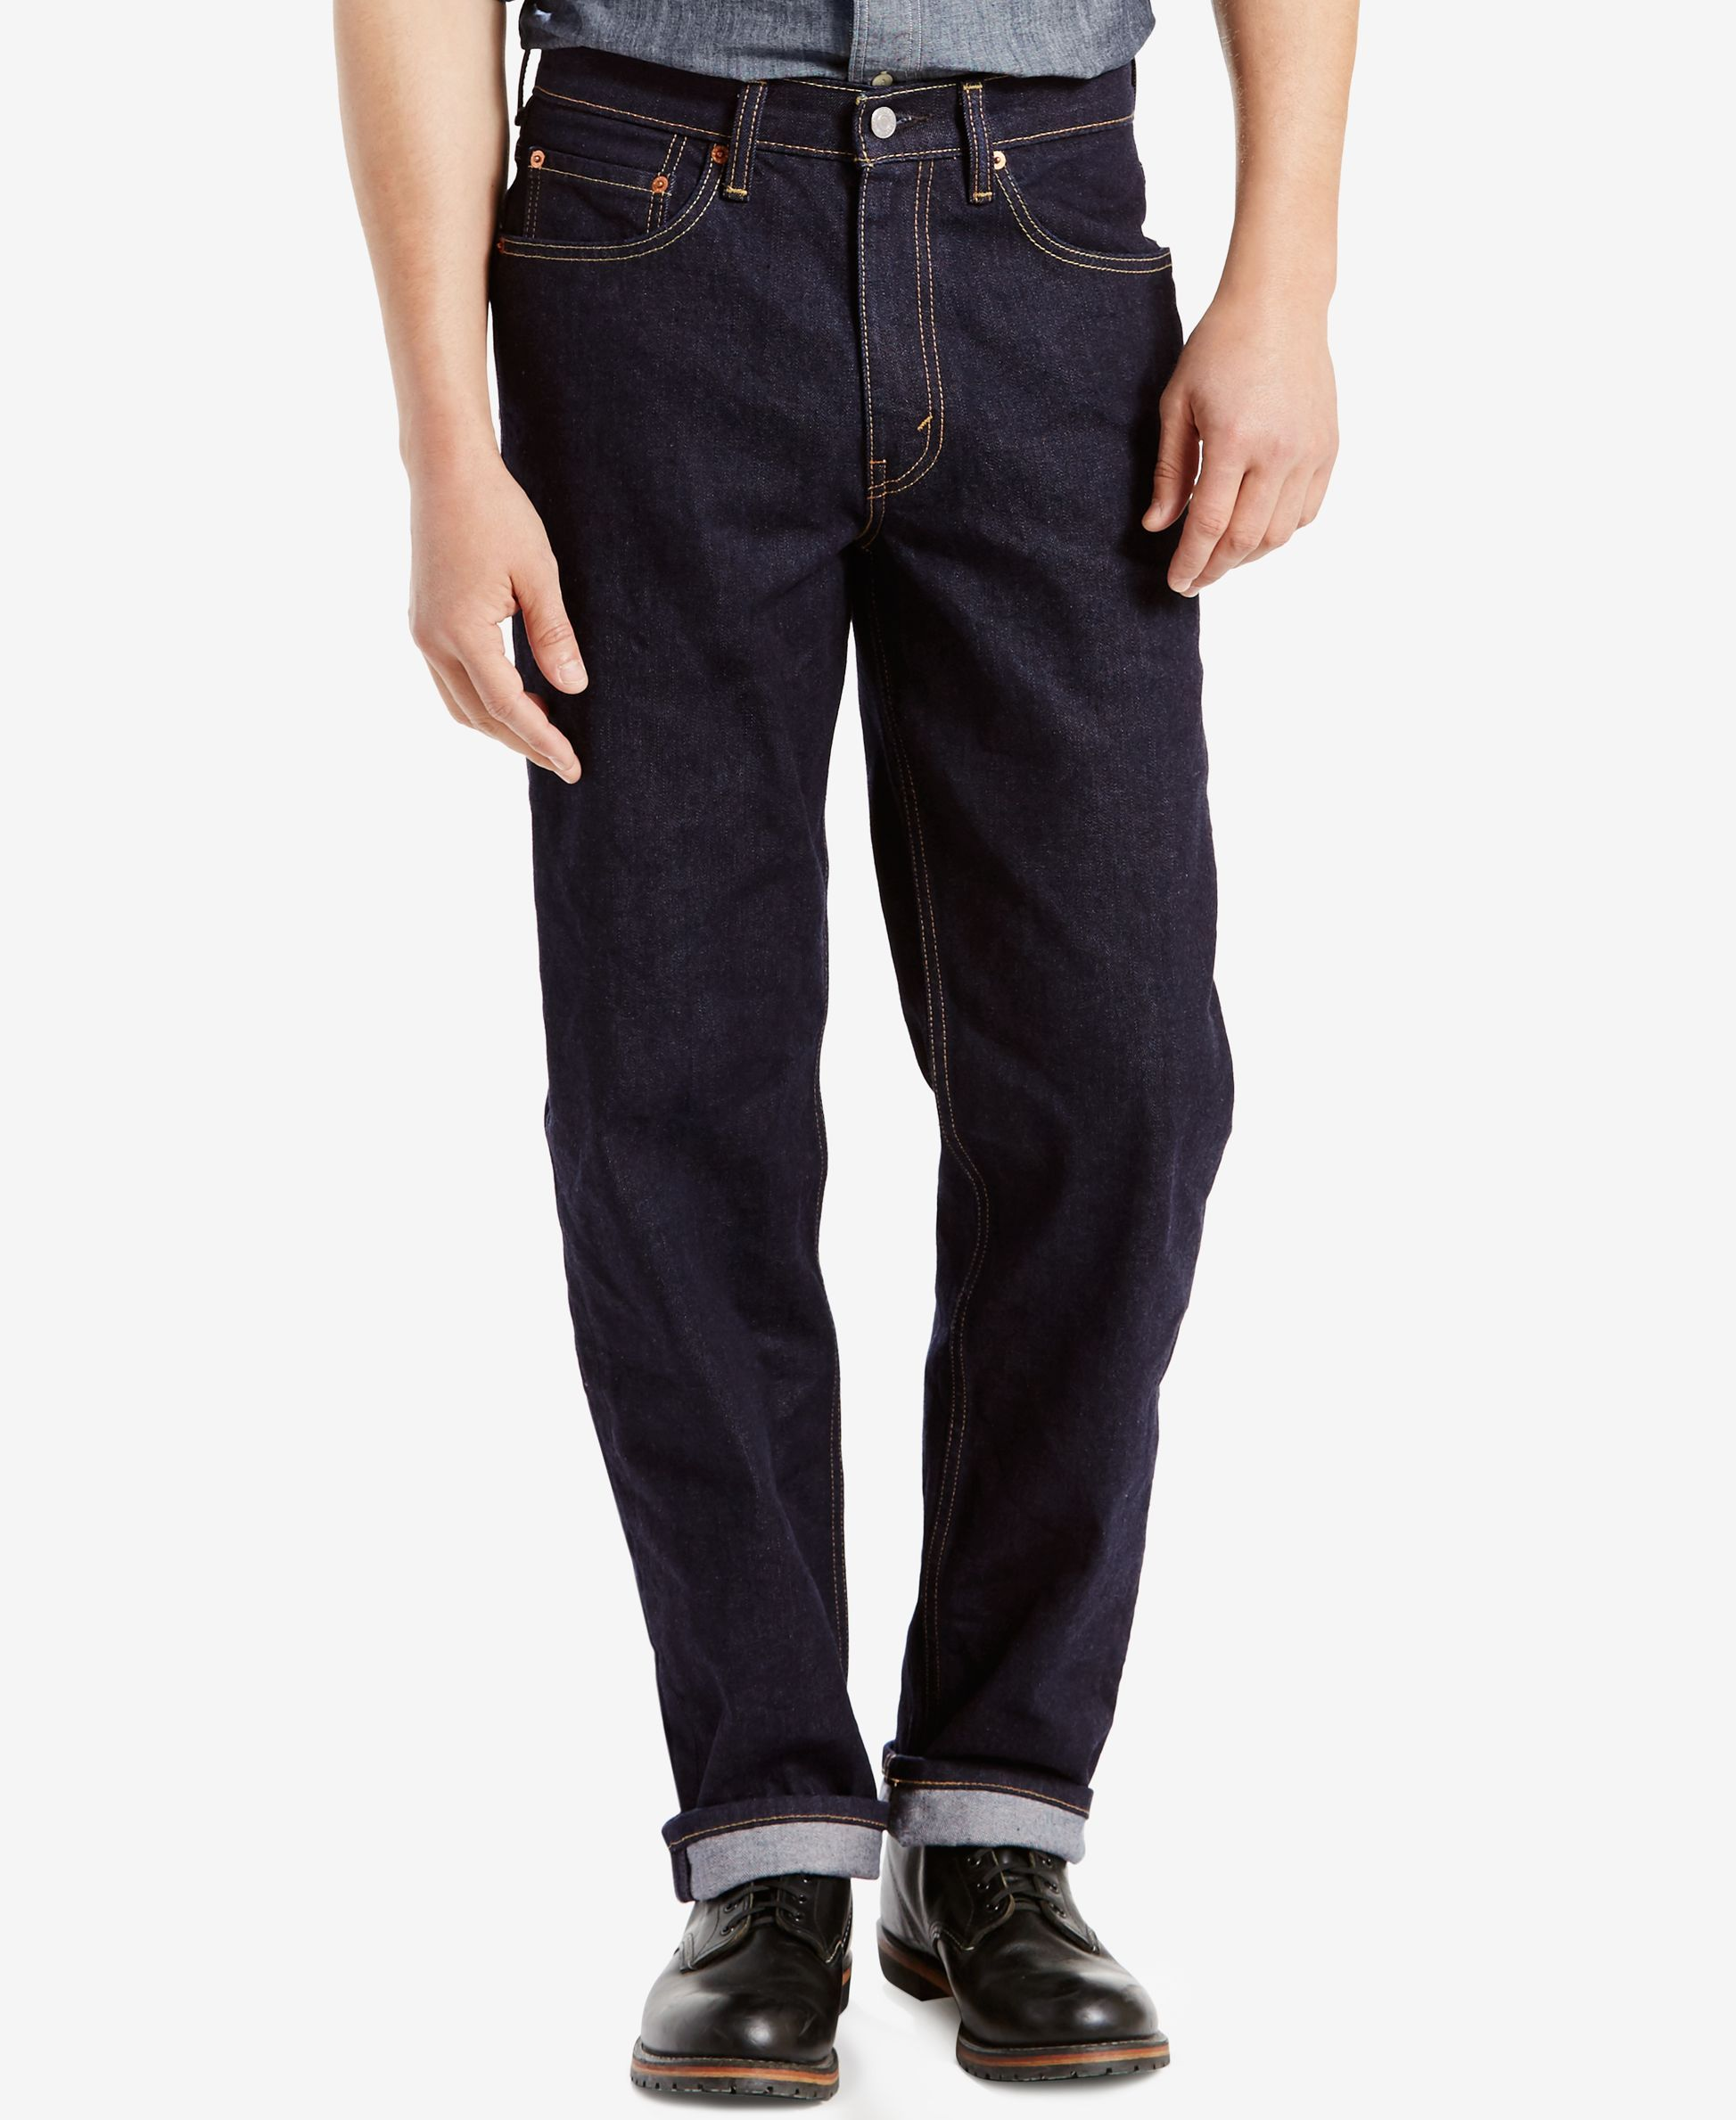 Mens 550 relaxed fit jeans blue jeans mens jeans fit